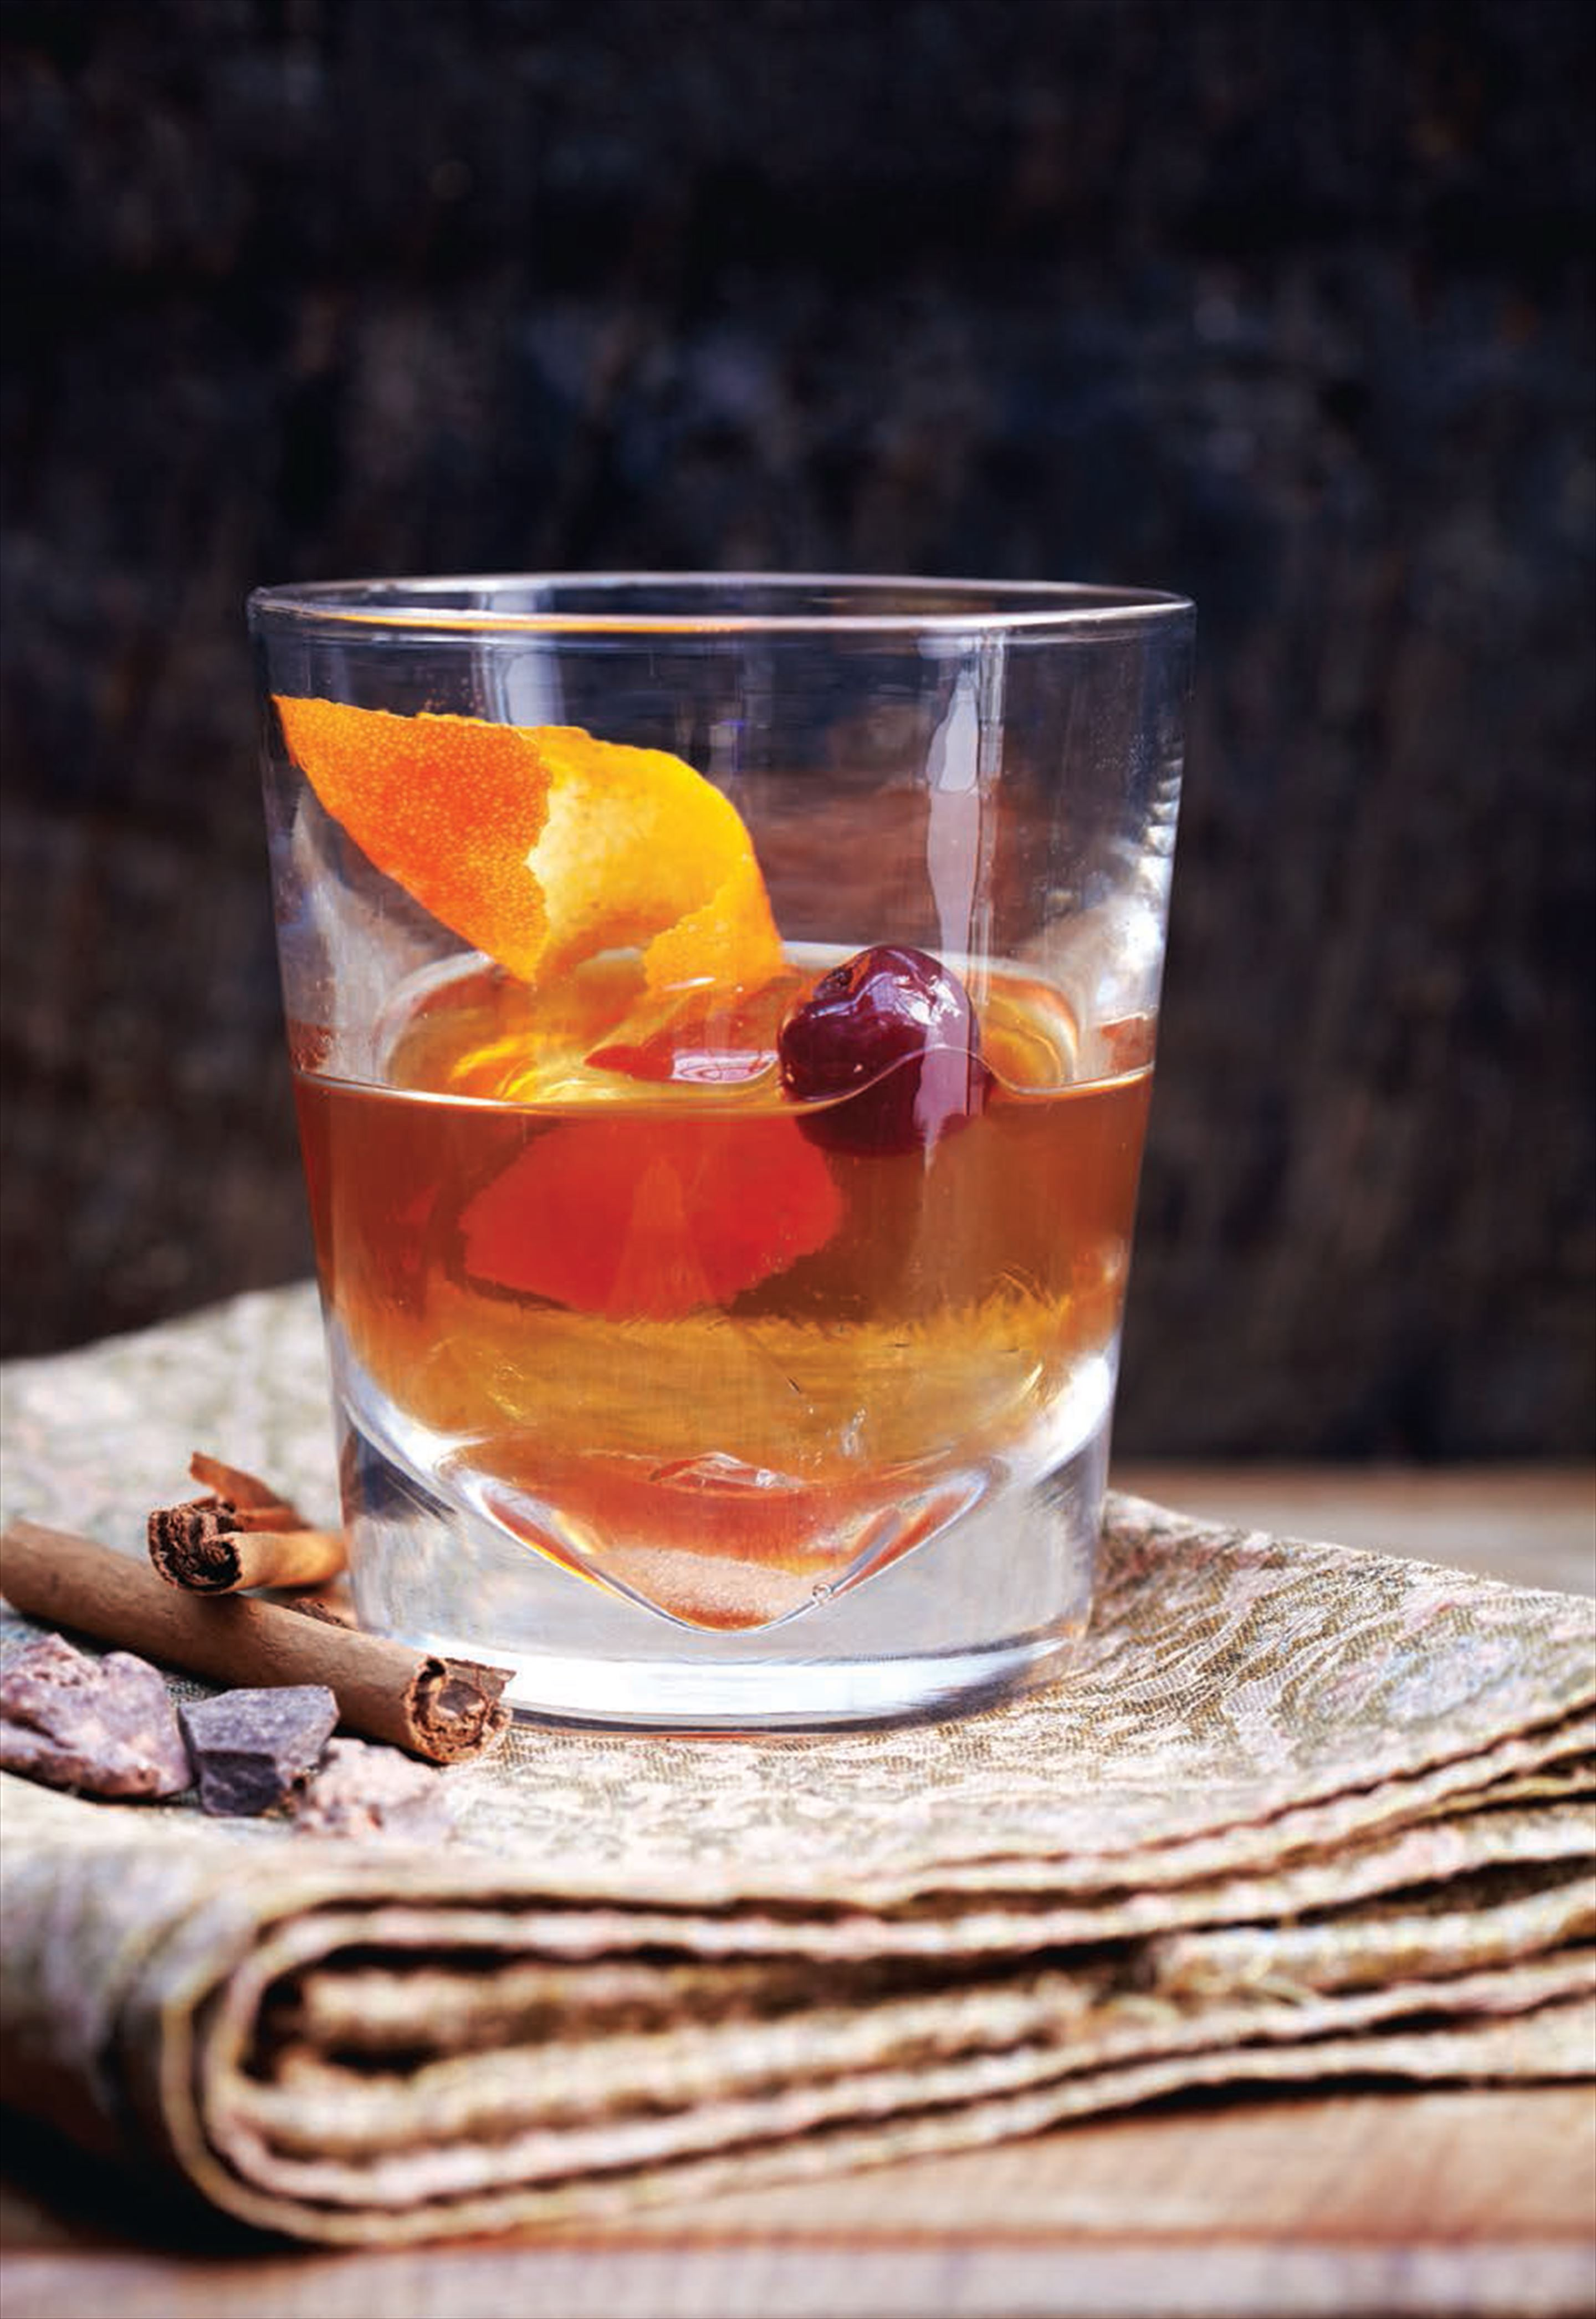 Sumptuous old-fashioned